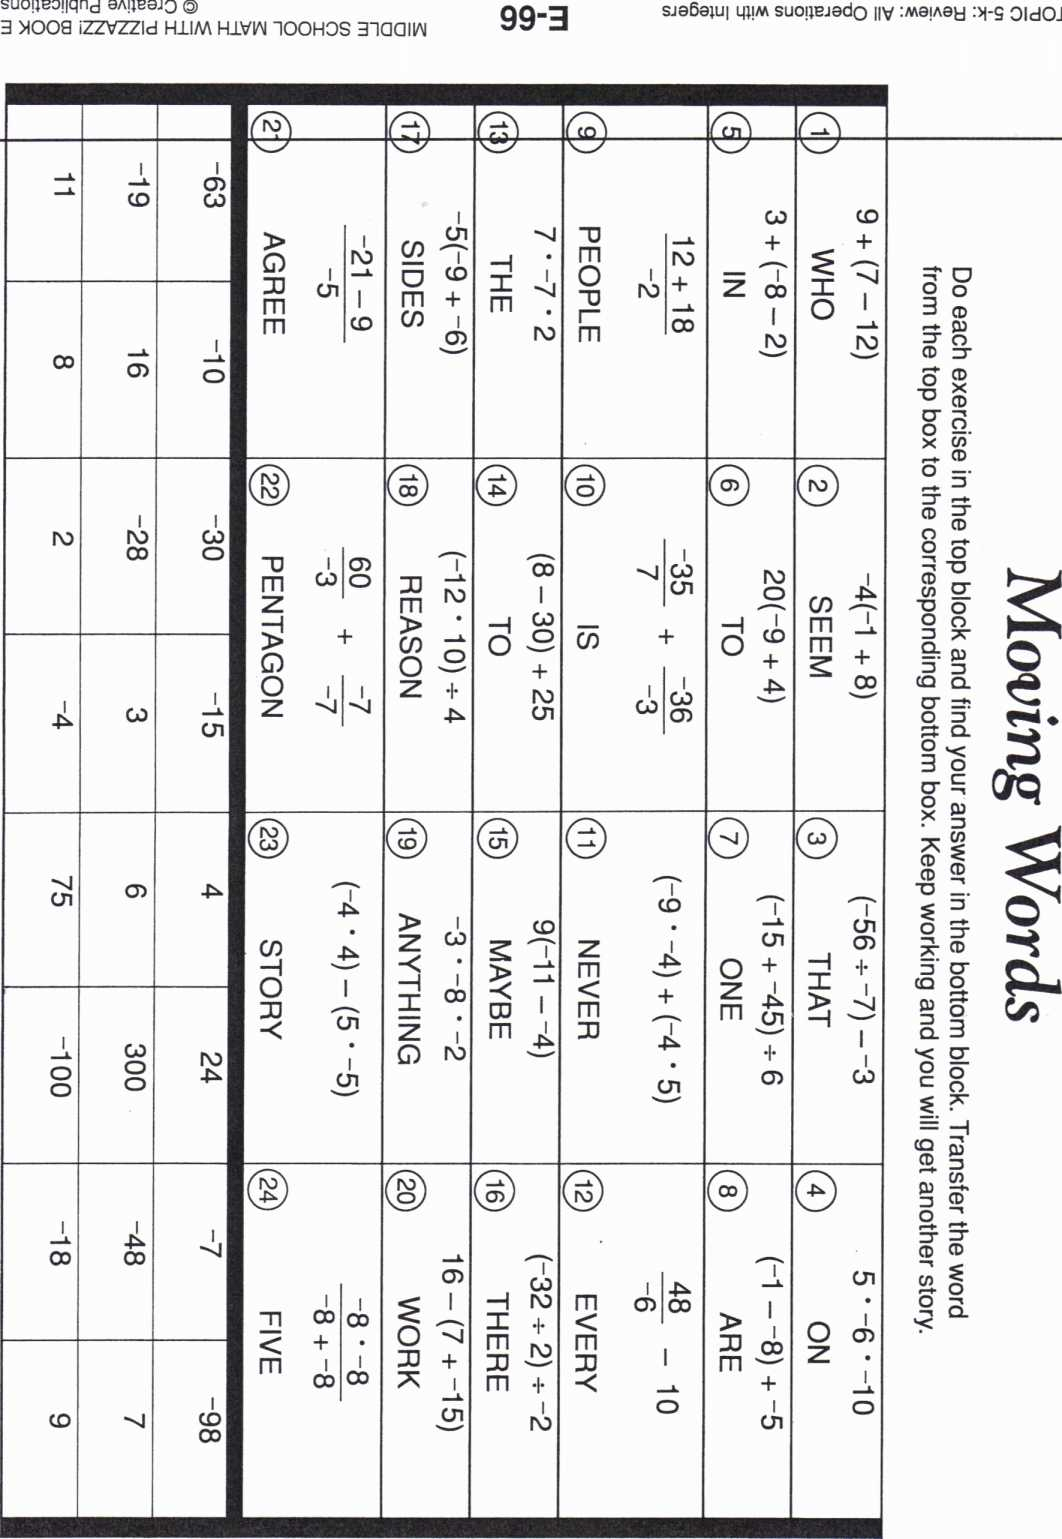 Math Spreadsheet Throughout Moving Words Math Worksheet